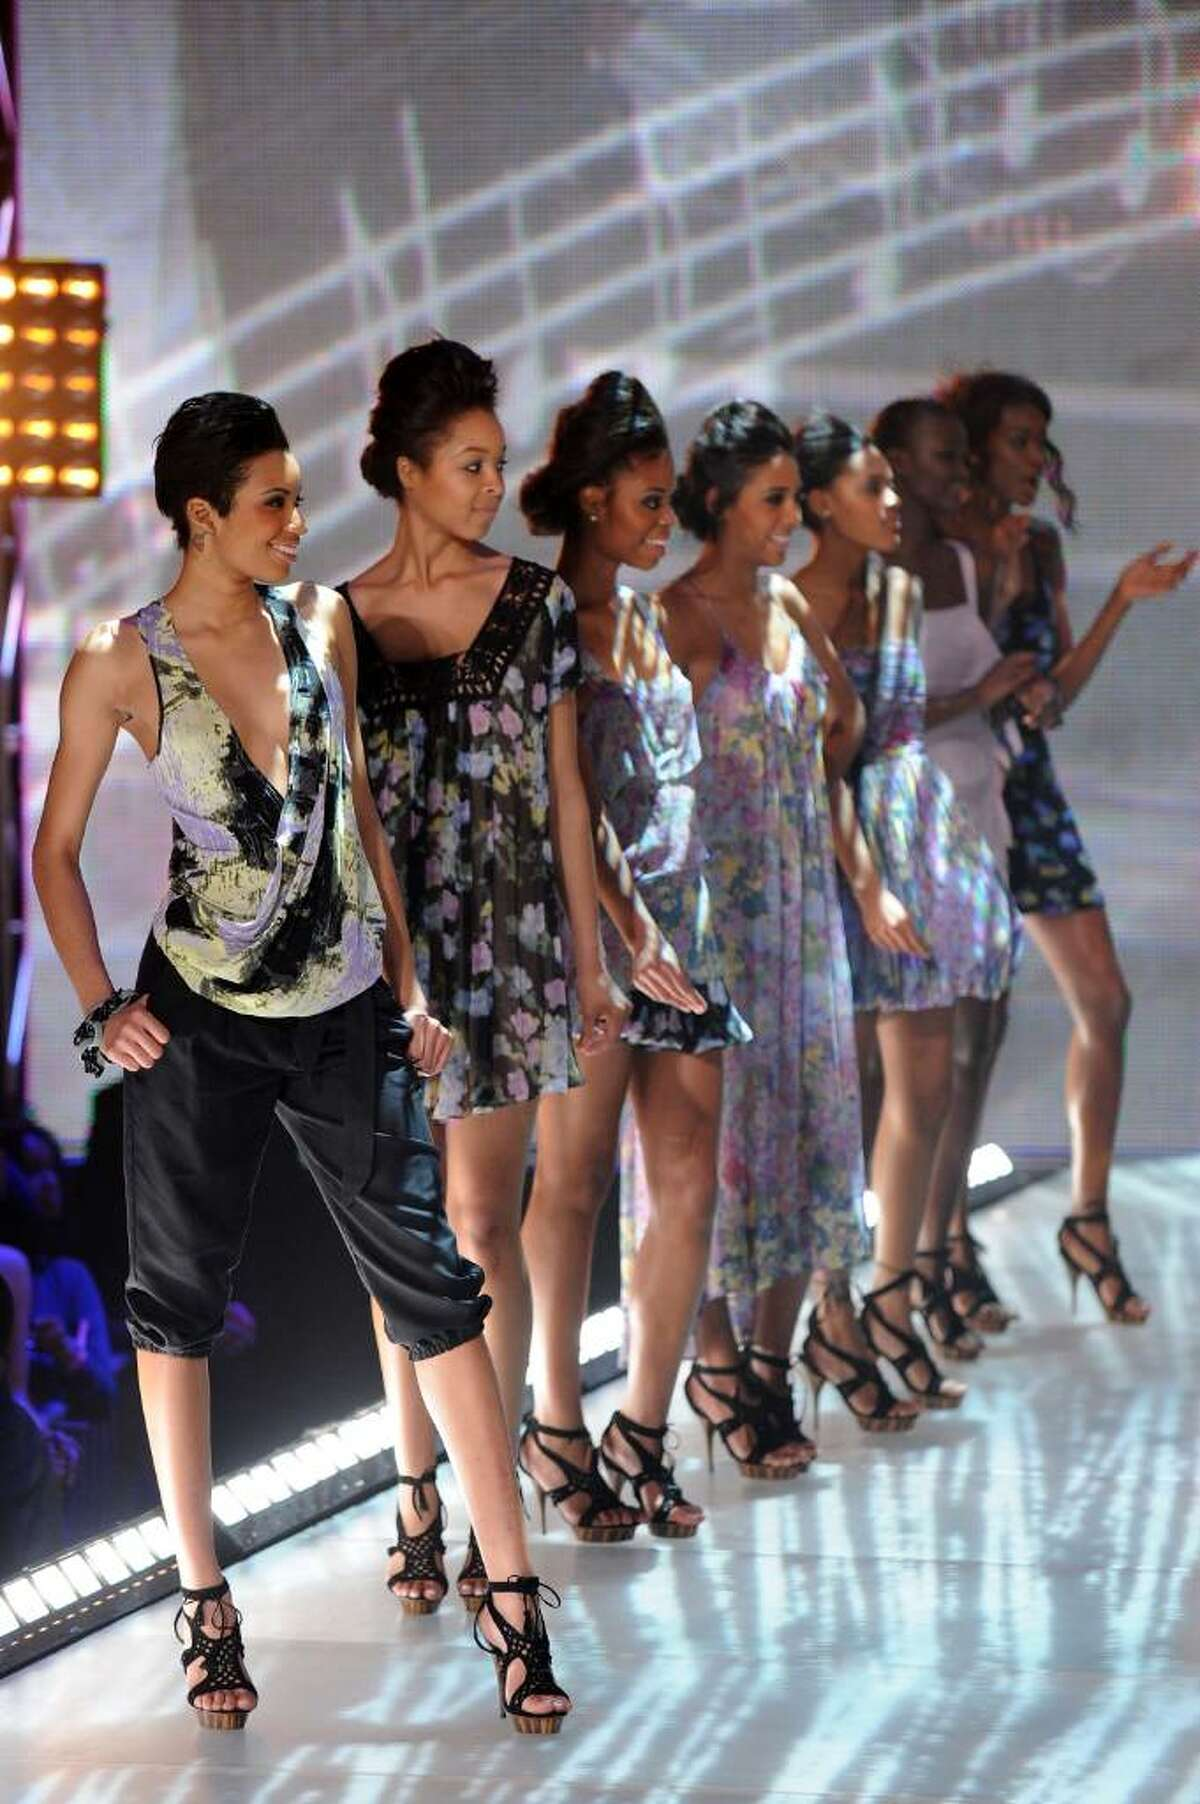 NEW YORK - FEBRUARY 27: Models walk the runway at BET's Rip The Runway 2010 at the Hammerstein Ballroom on February 27, 2010 in New York City. (Photo by Bryan Bedder/Getty Images)